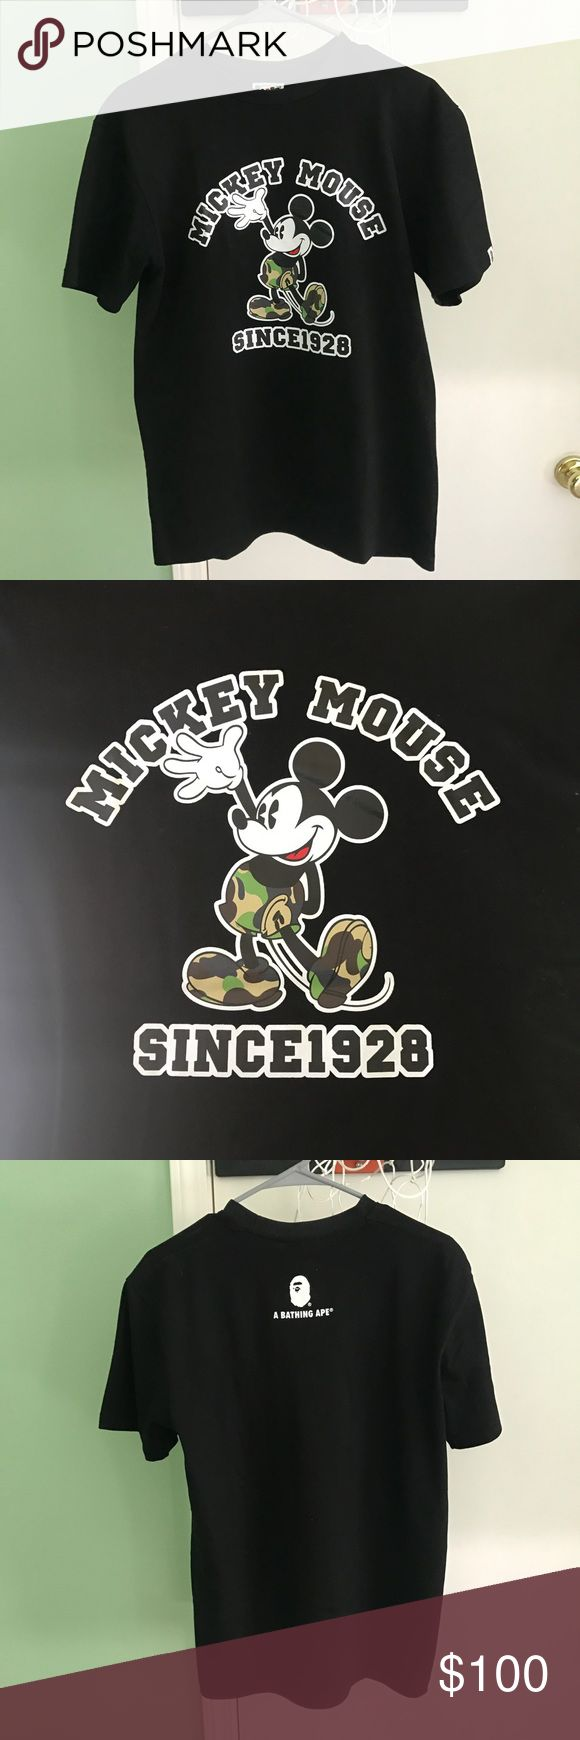 Authentic Bape Mickey Mouse / Disney Tee For sale is a brand new Bape x Disney tee. 100% authentic as seen by the tags. Only taken out of bag for photos. Size L, fits true to size.   This shirt has never been worn- it sat in my closet so I'm deciding to sell. 10/10 condition, brand new, no marks stains or flaws. Comes with bag as well.   Shipped via USPS priority mail the day of or day after your purchase. Please message me with any further questions or inquiries, or for more photos. Thank…